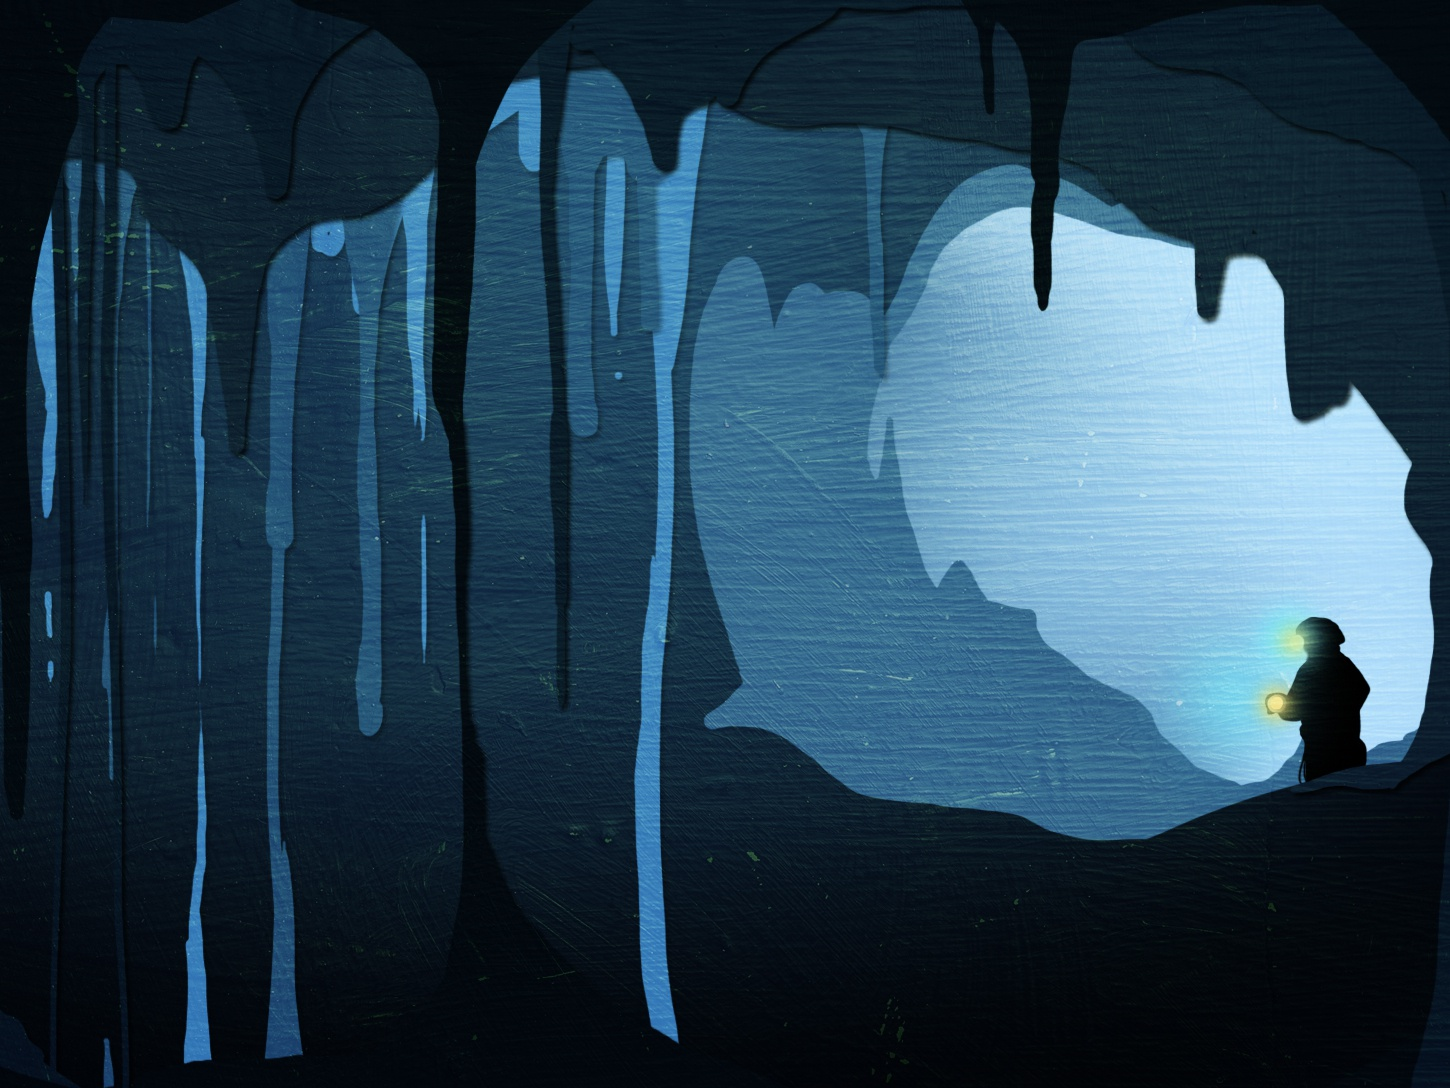 Gone Caving - Soda Straws cut paper exploration digital illustration illustration adventure caves cave